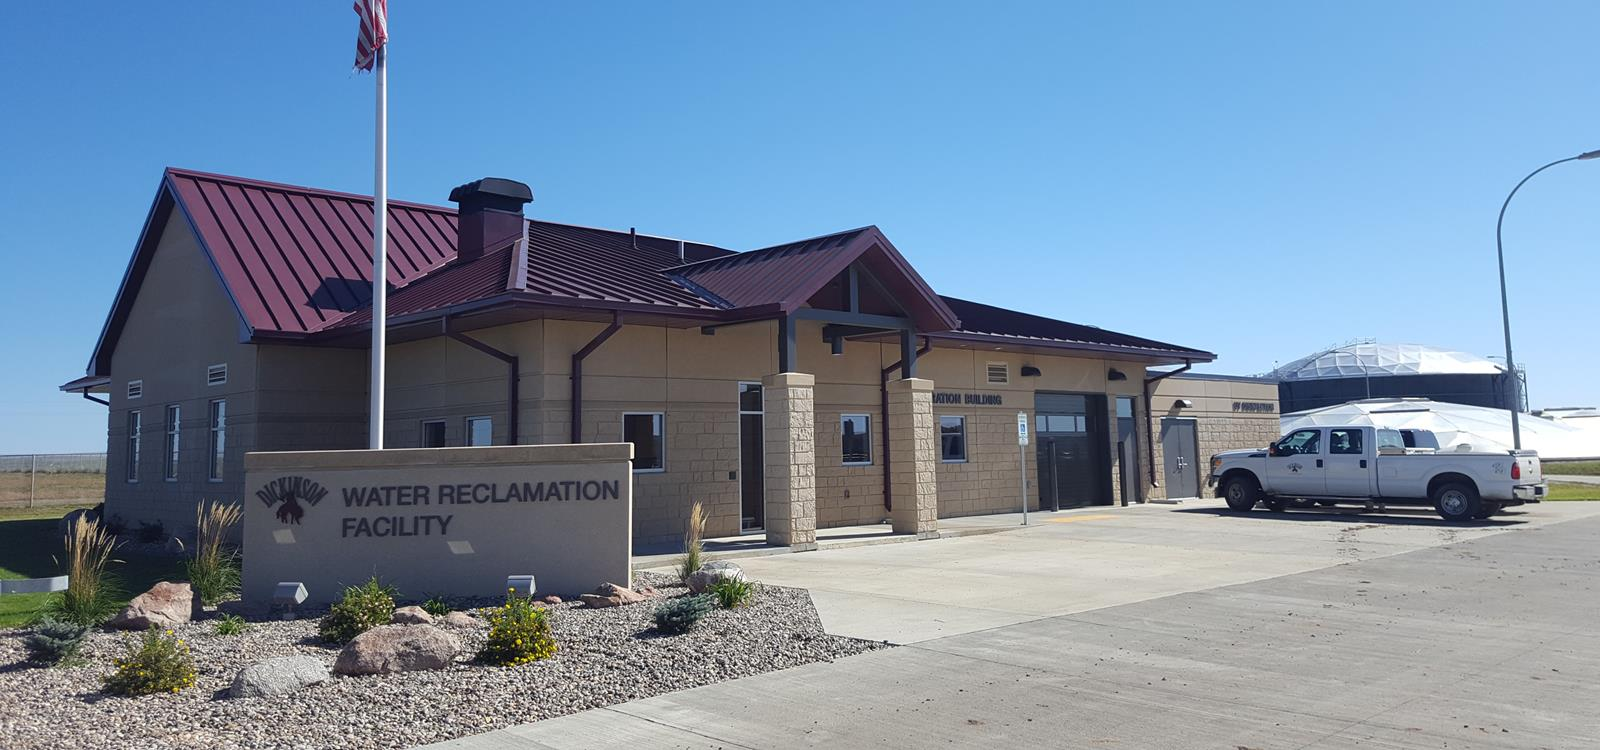 Dickinson Water Reclamation Facility Building Exterior